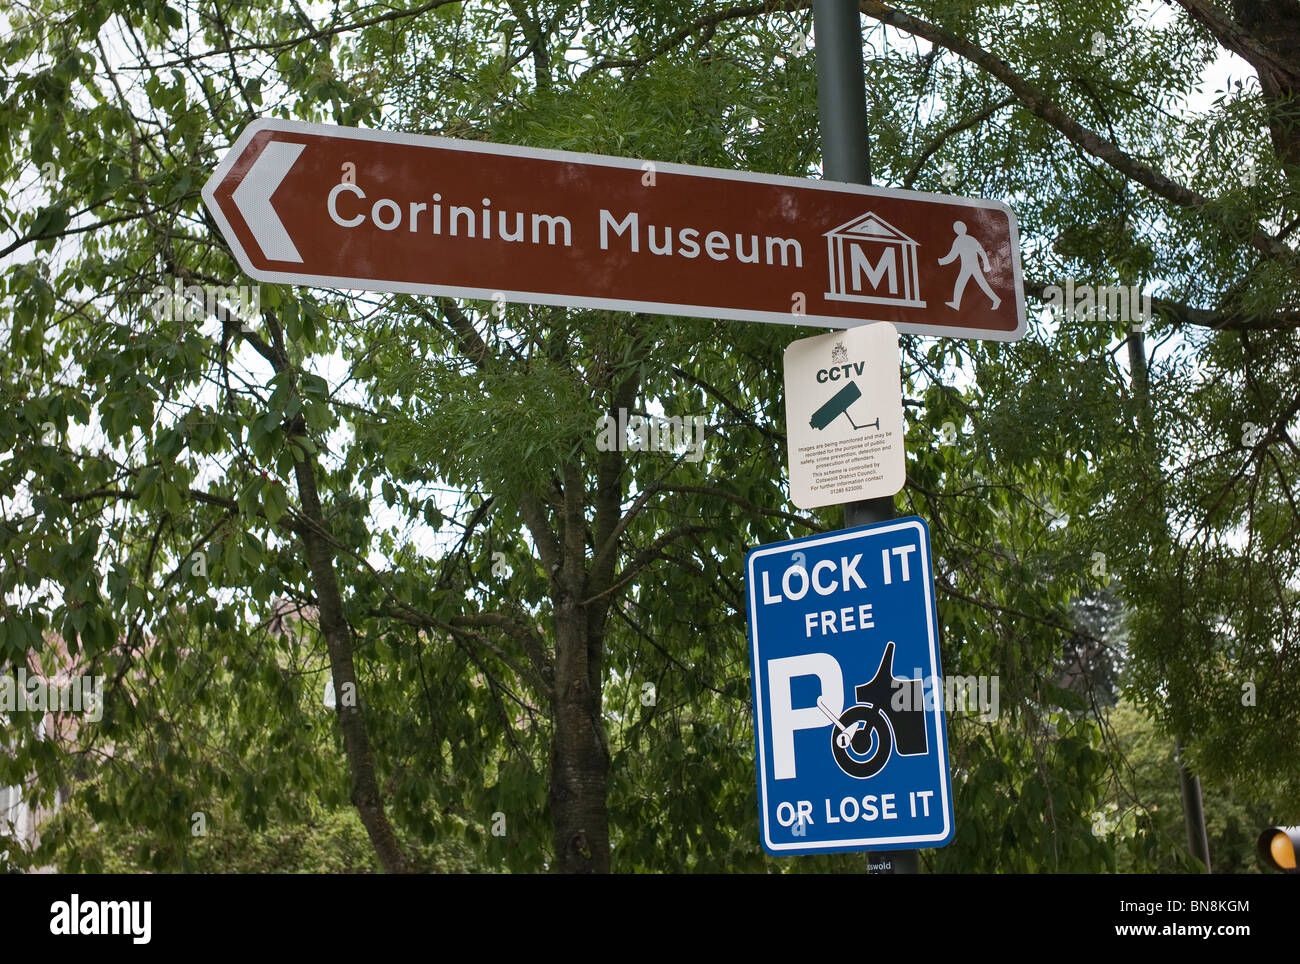 Signs in town car park showing direction to museum and warning of theft to motorcyclists - Stock Image